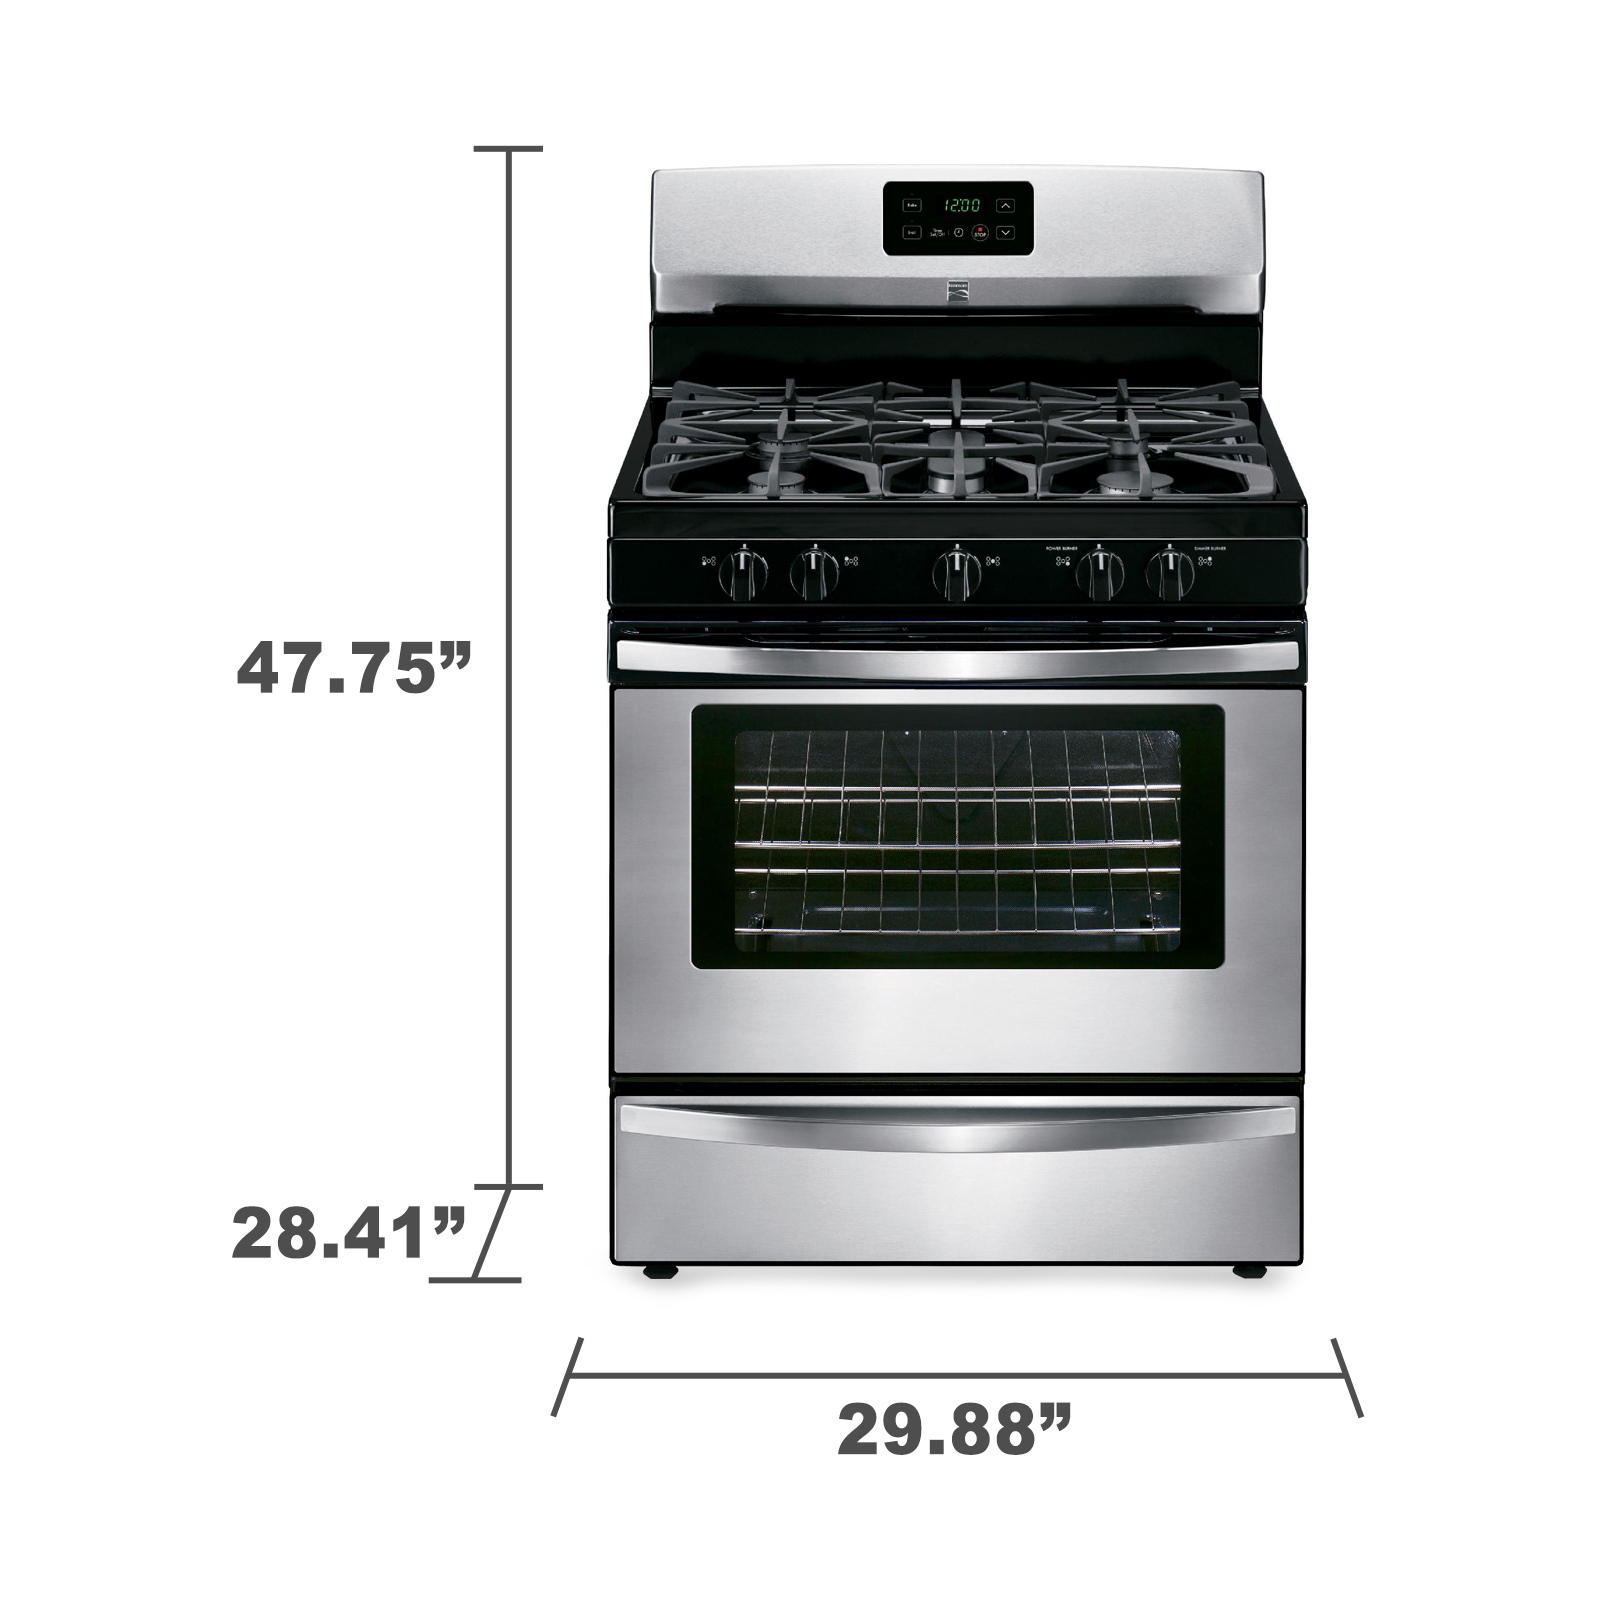 Kenmore 4.2 cu. ft. Gas Range w/ Broil & Serve™ Drawer - Stainless Steel